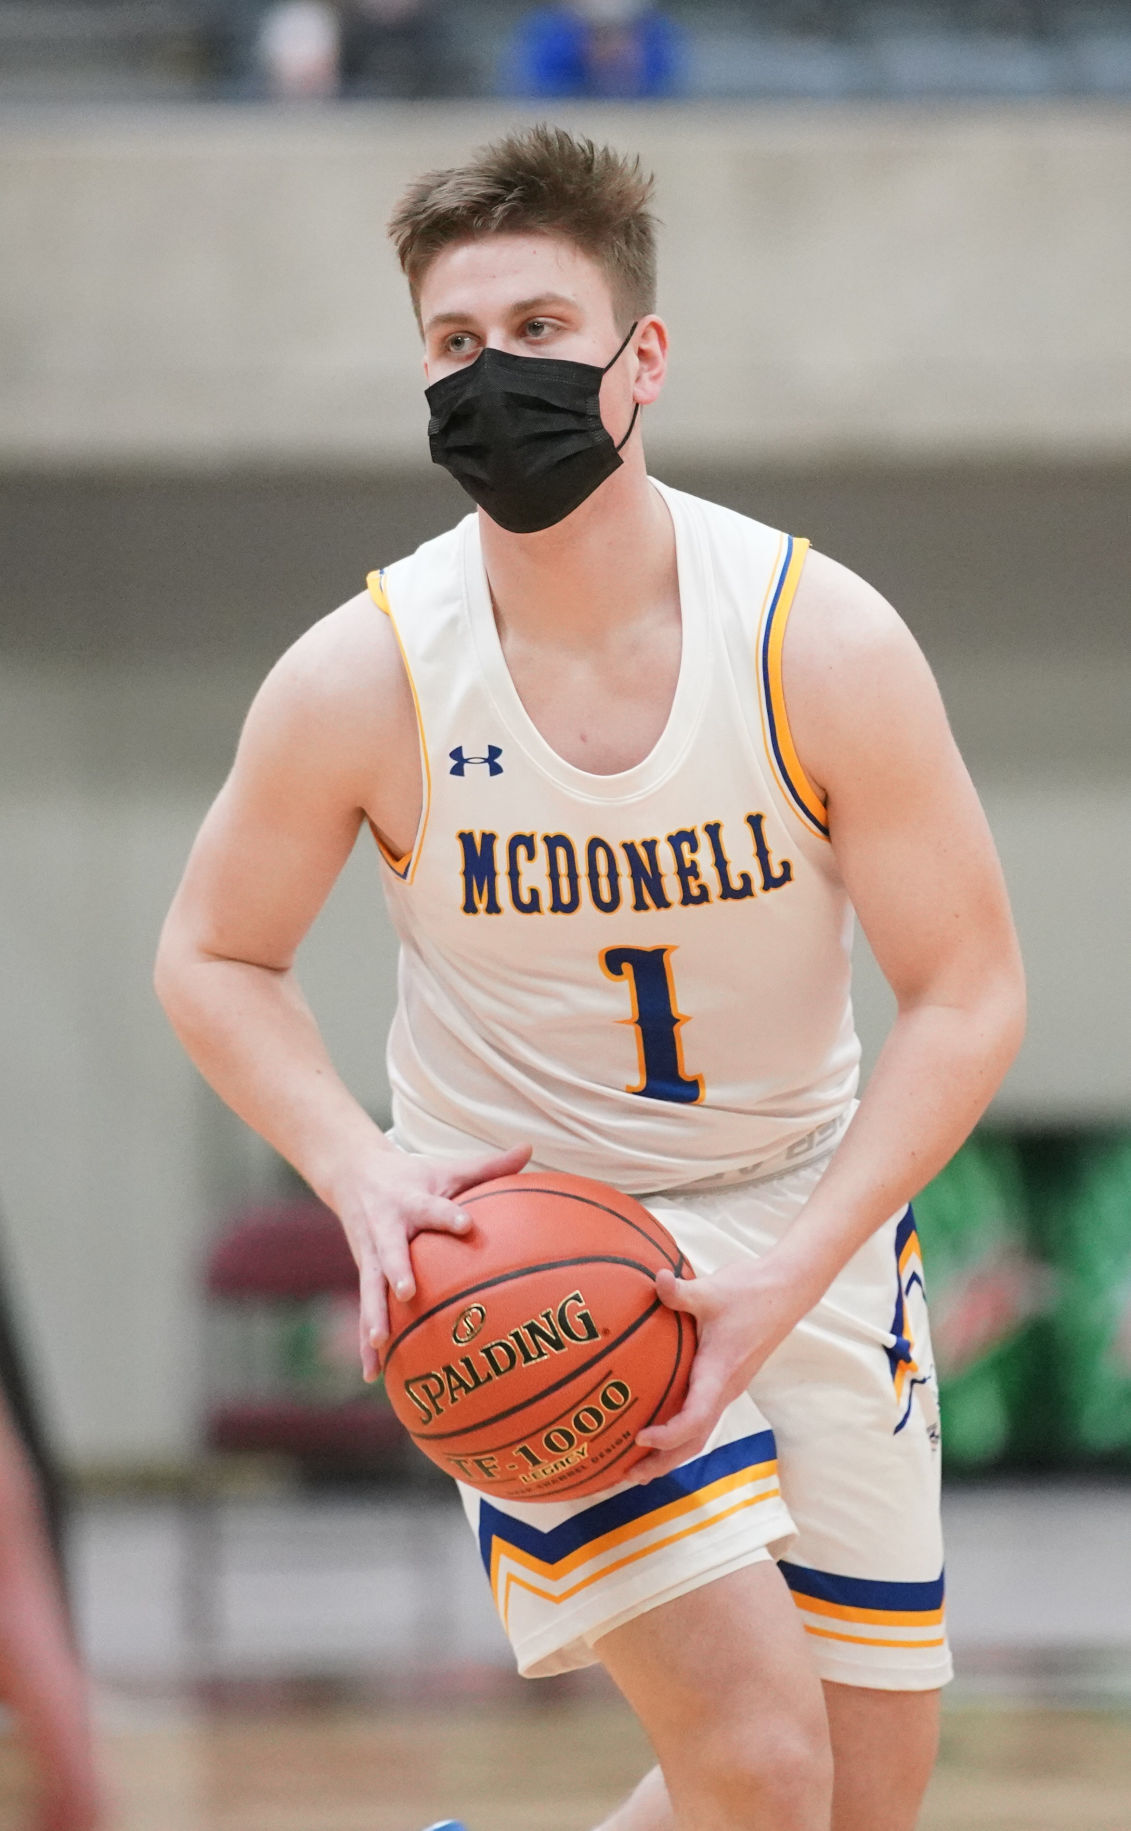 McDonell vs NEW Lutheran boys basketball